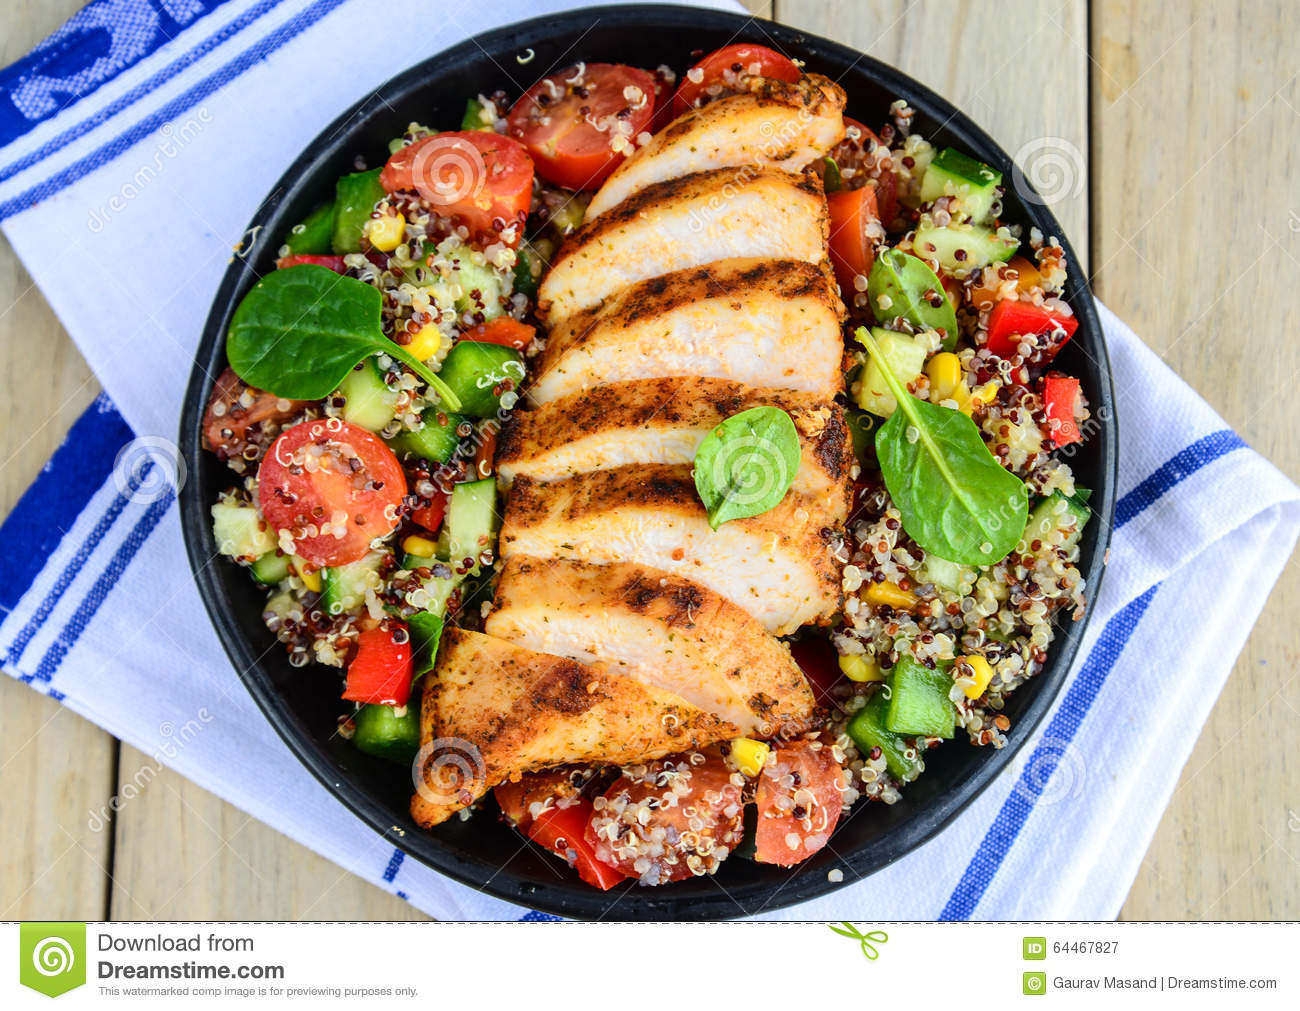 Qunioa salad with grilled chicken